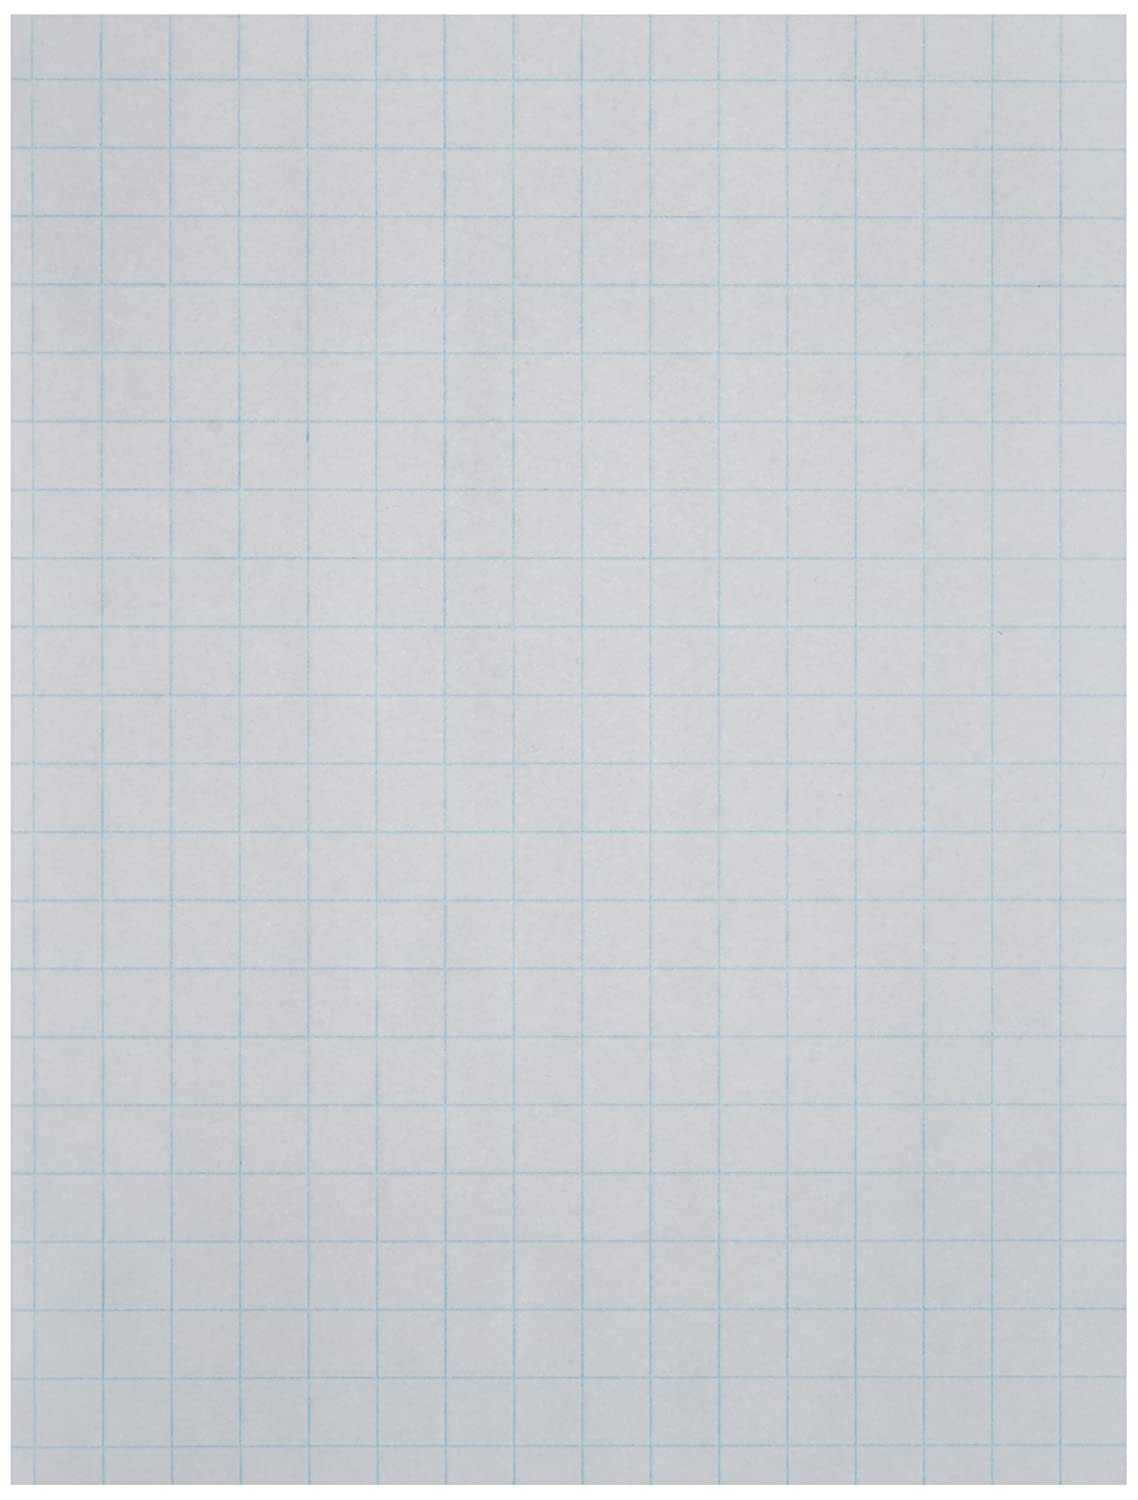 Chart Tablets | Amazon.com | Office & School Supplies - Paper